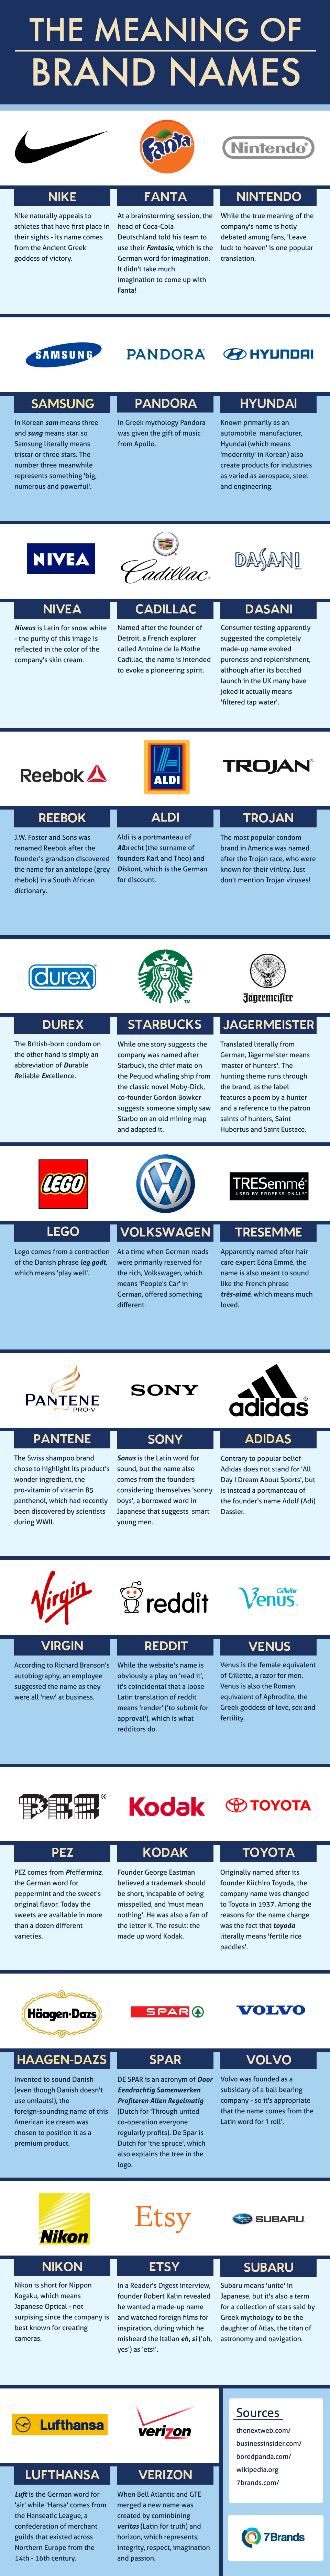 The-Meaning-of-Brand-Names